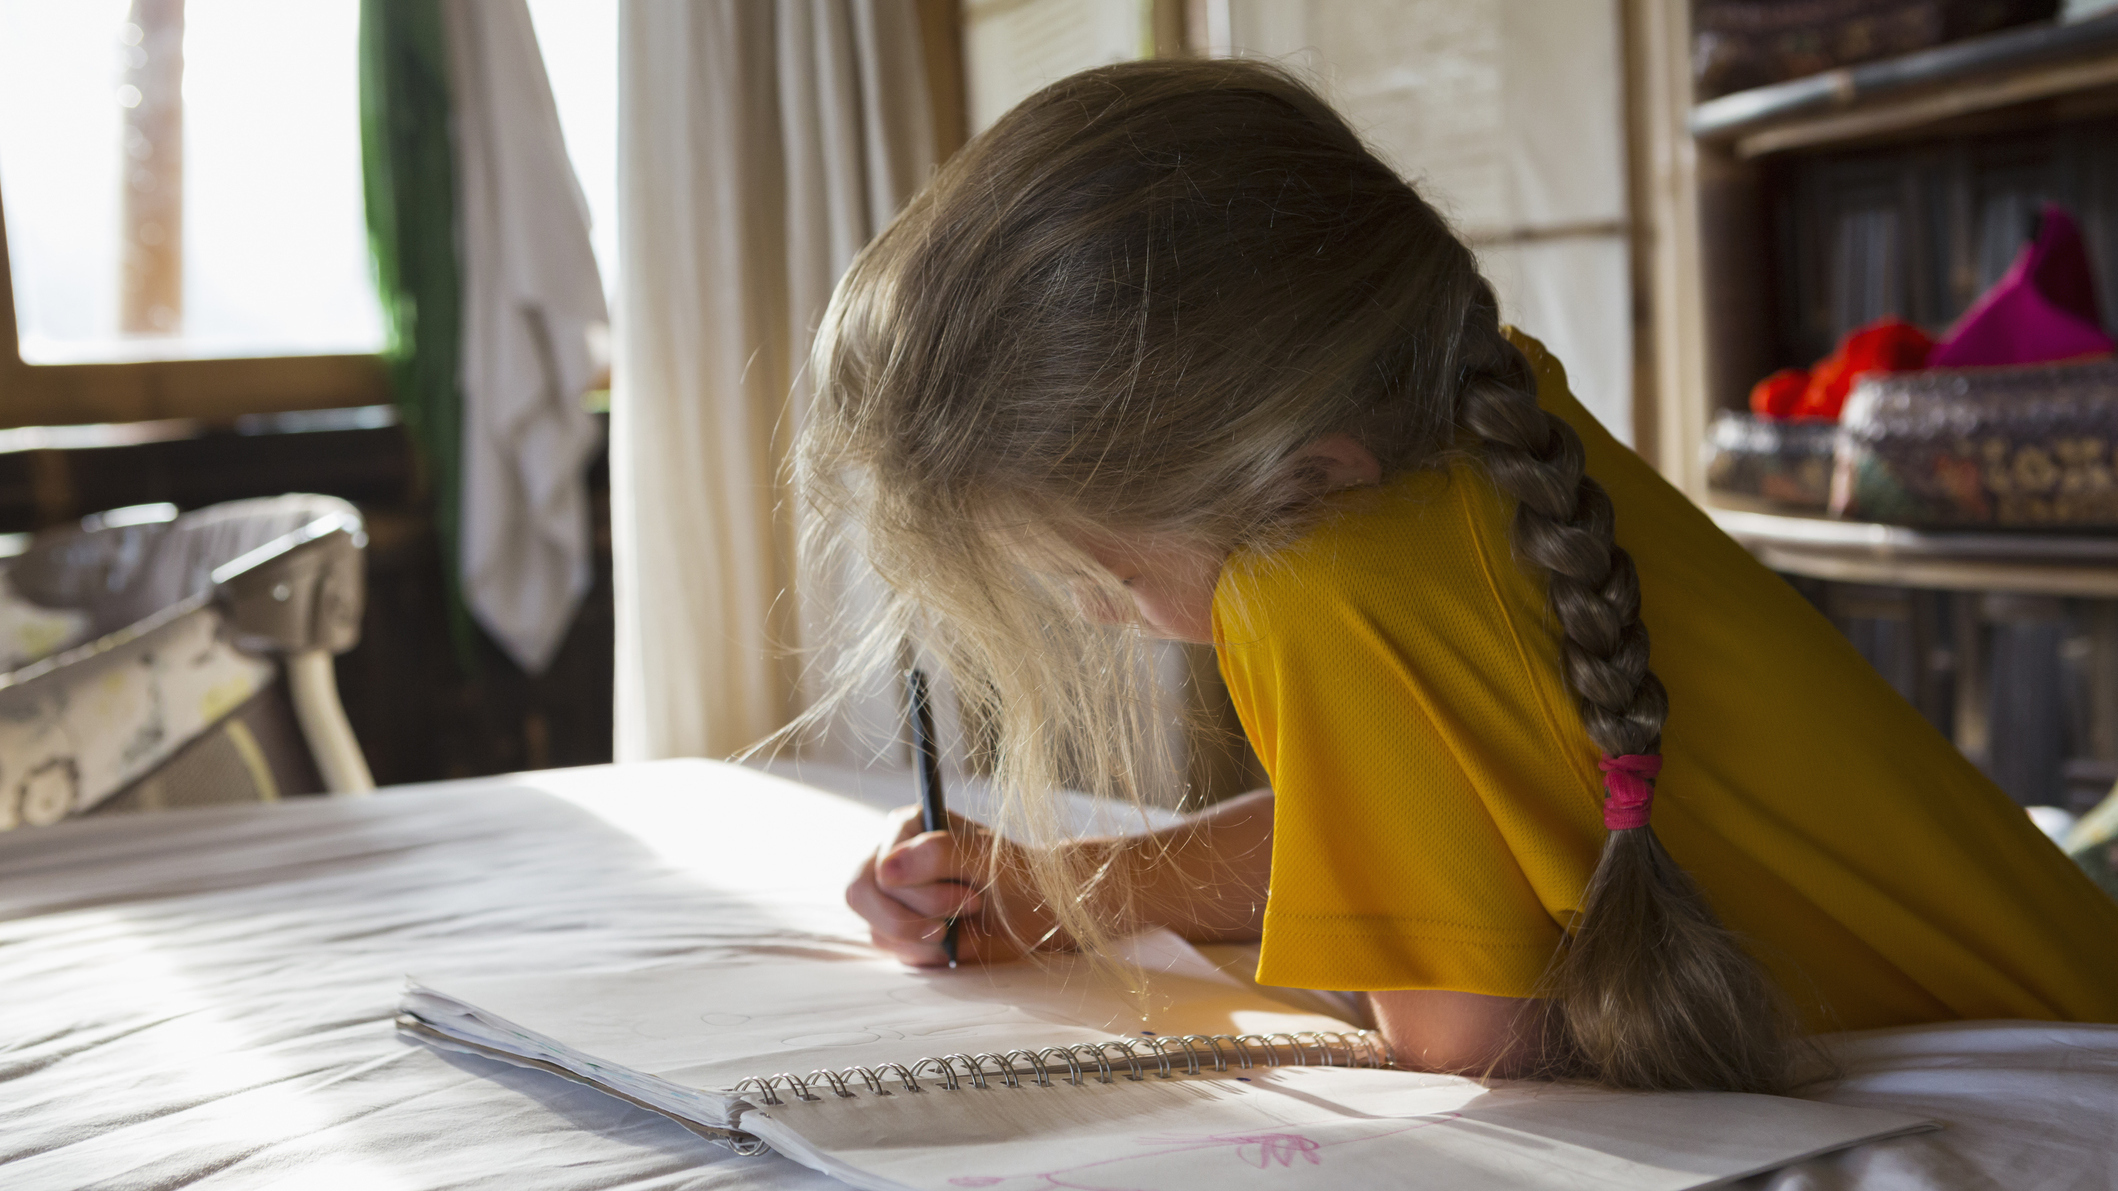 Study: because of gender stereotypes, girls begin to doubt themselves from 6 years